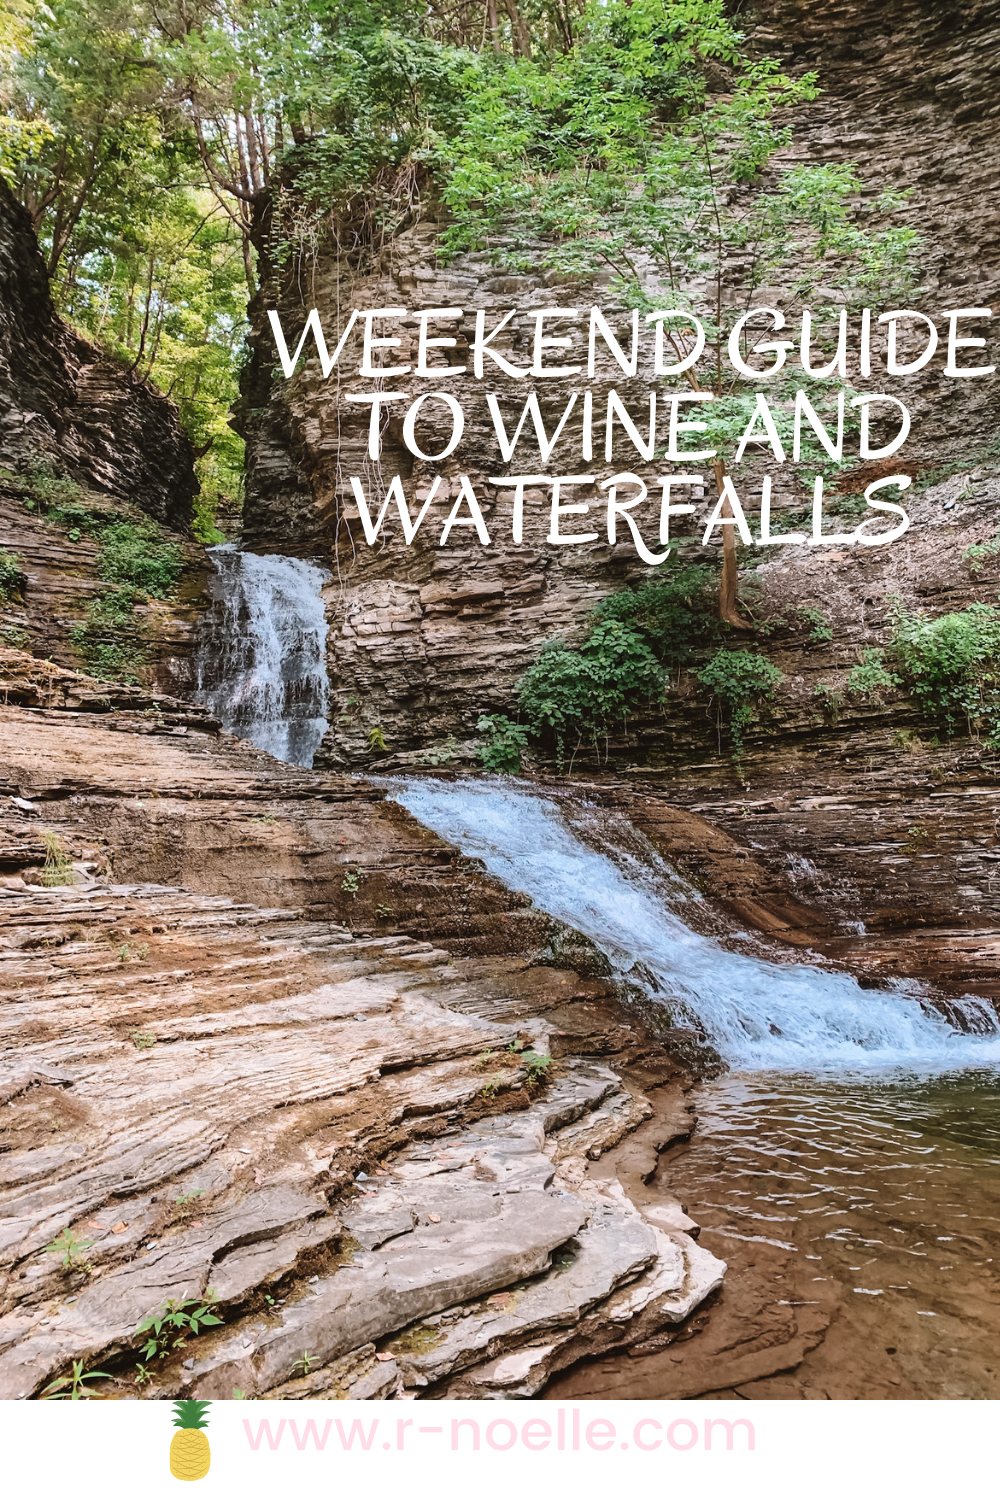 Not everyone would think that a weekend to wineries would include camping at a campsite. The campsite for the remainder of the weekend fueled the adventure site of finding waterfalls not just in Watkins Glen State Park, but in the surrounding areas. If you're looking for things to do in Watkins Glen, it is endless. The other waterfalls allow you to swim and do more exploring. Always swim and keep exploring!